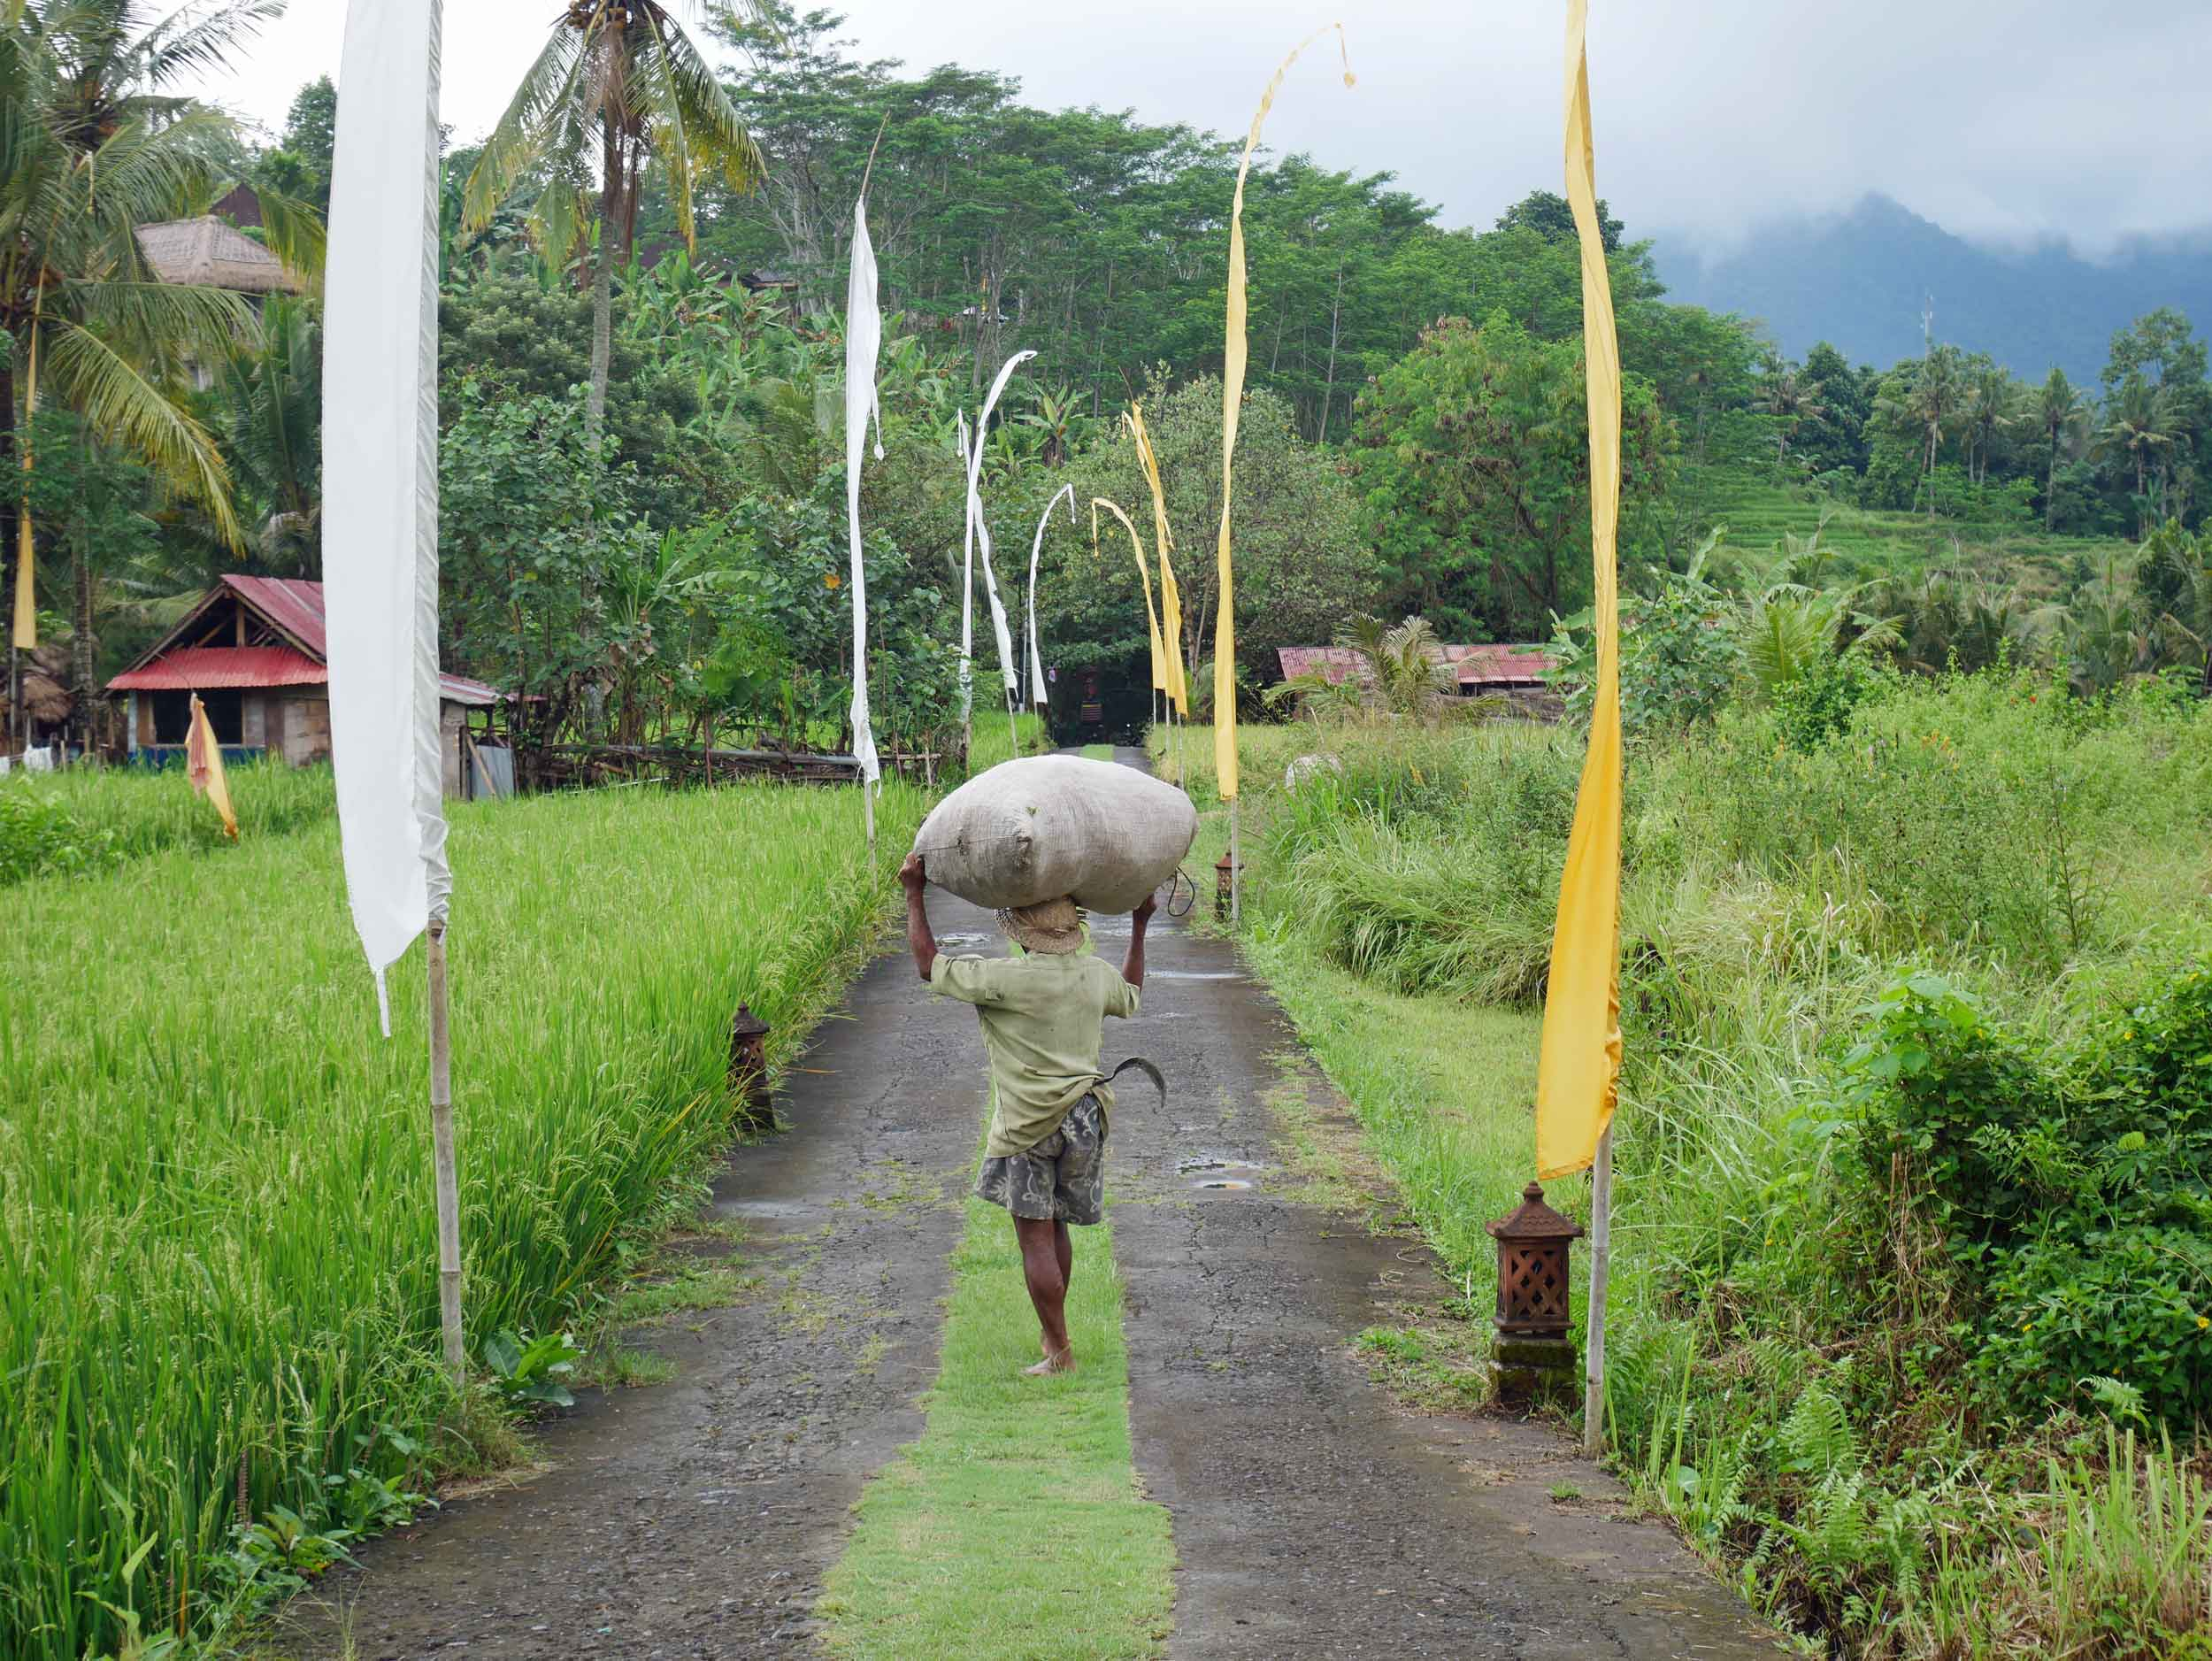 As workers returned from the fields, we spotted both men and women carrying back their harvest of the day.